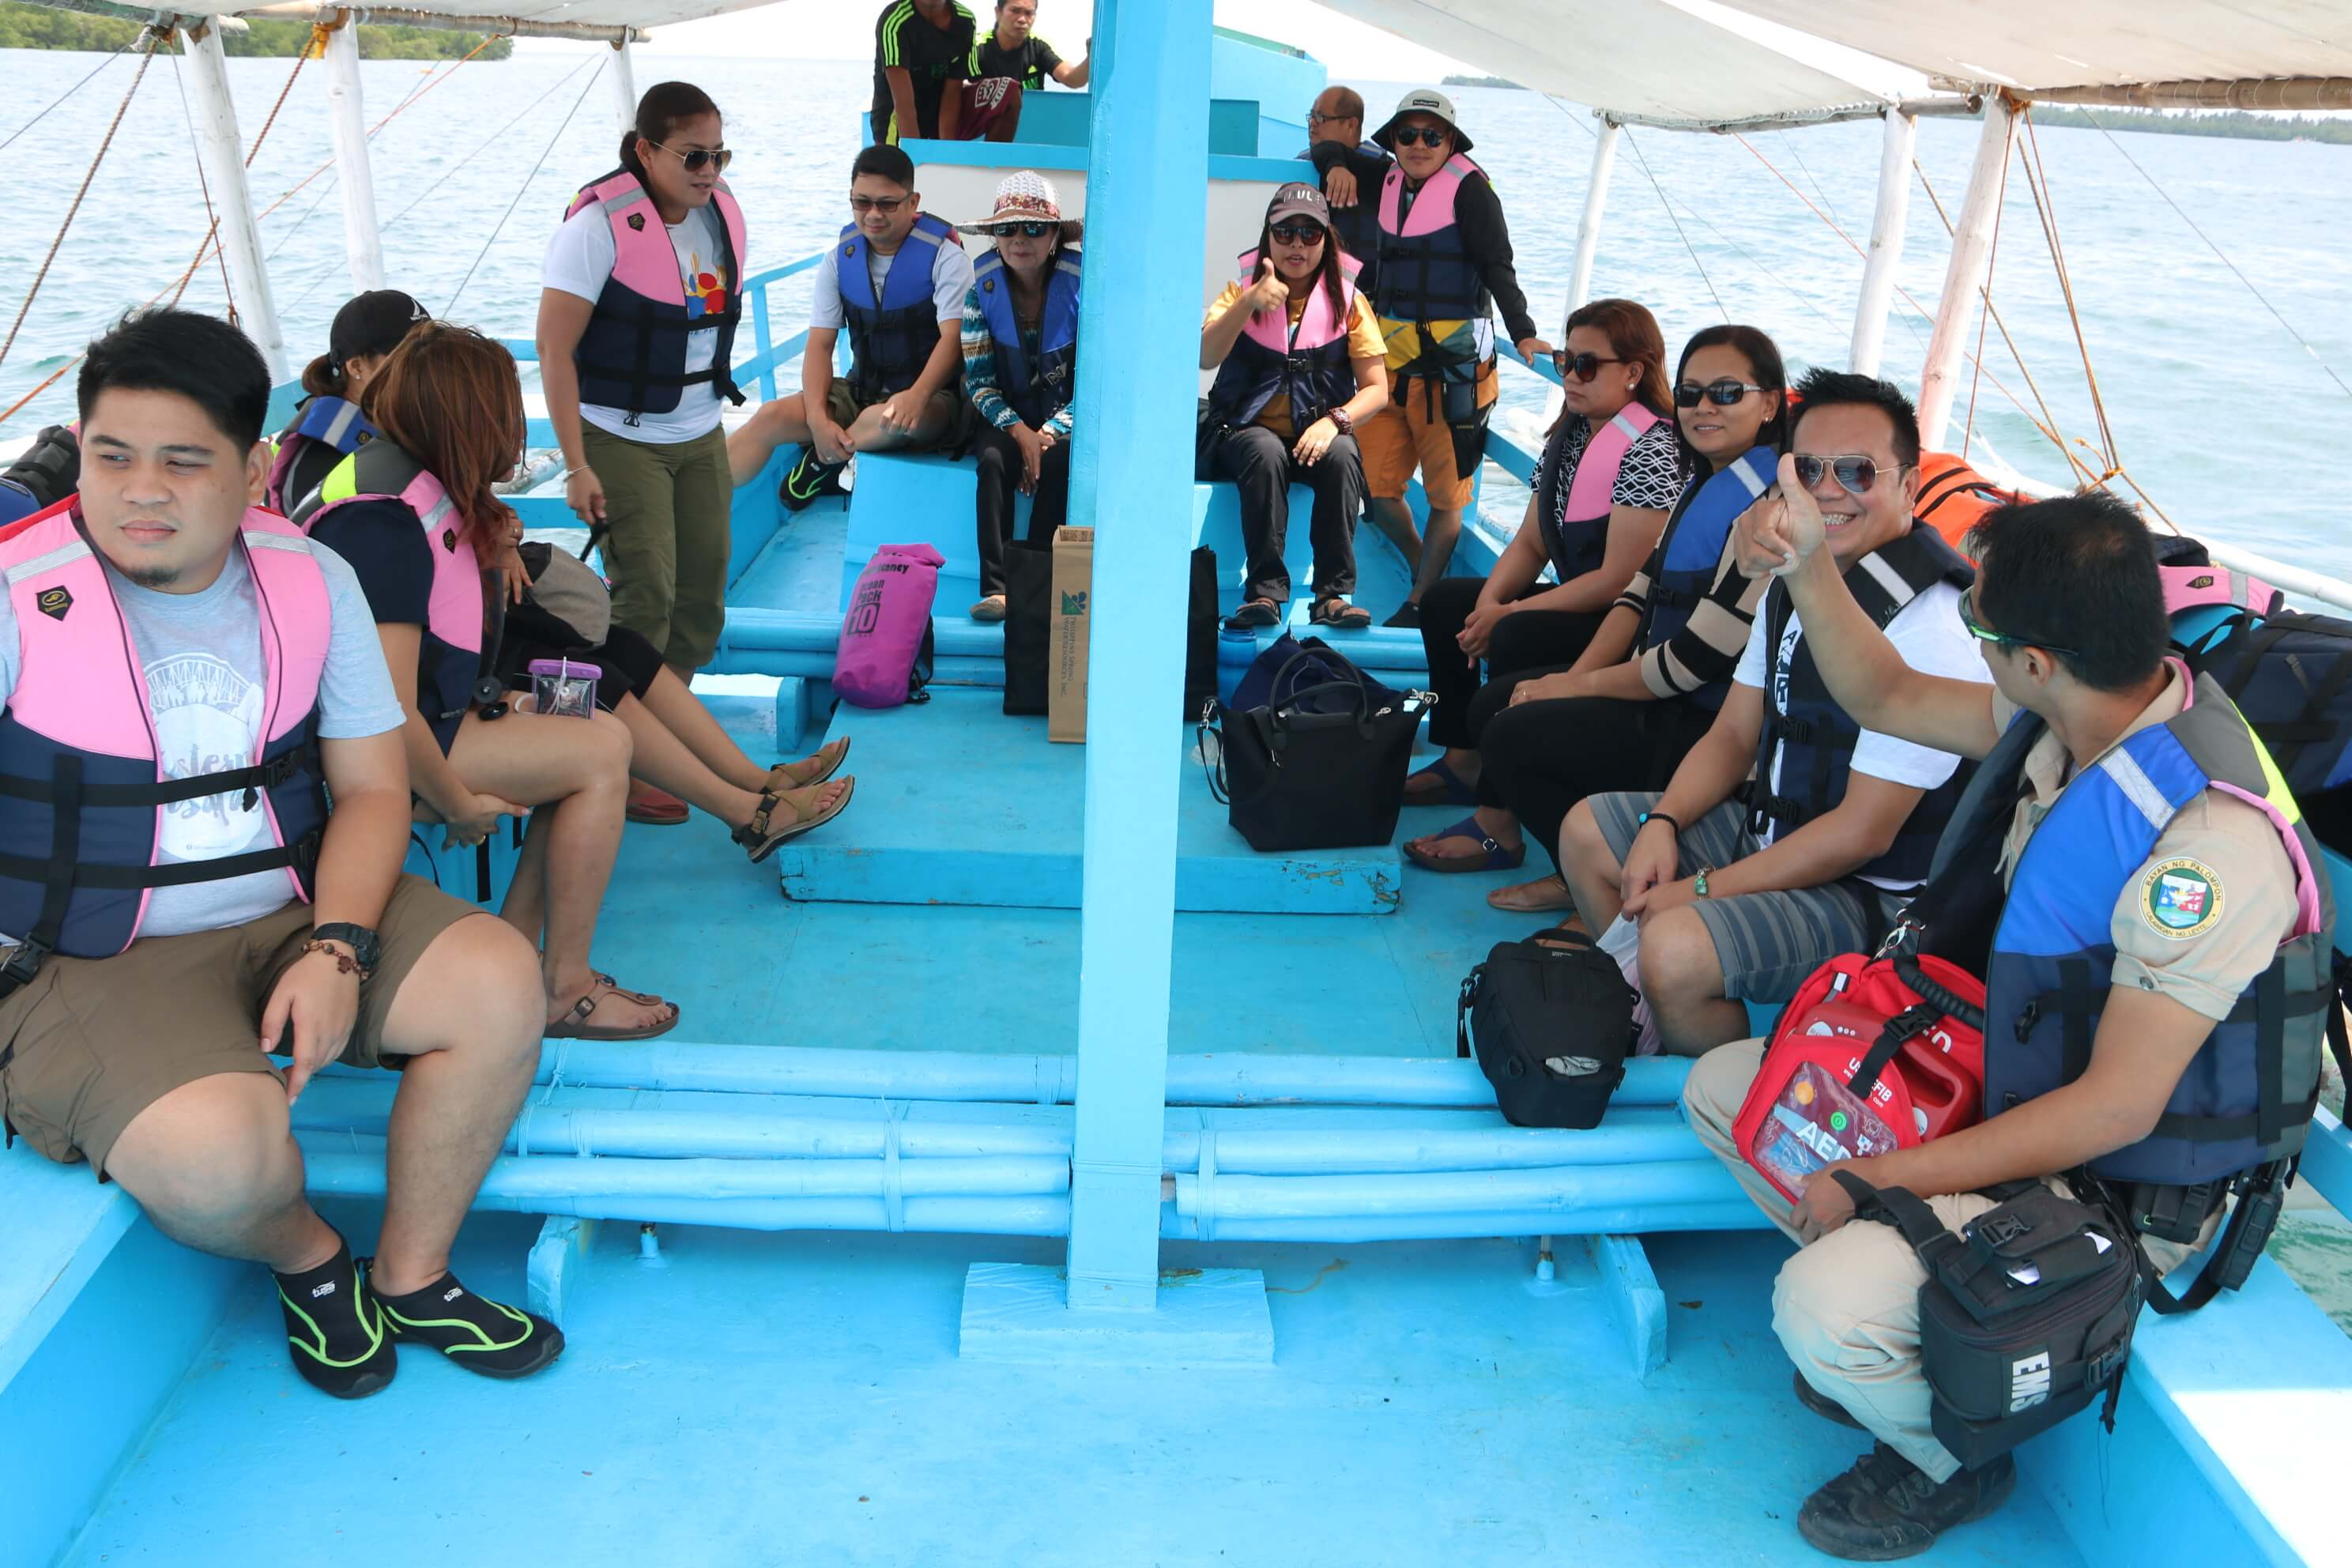 OCULAR INSPECTION AND VISIT OF SHORE EXCURSION